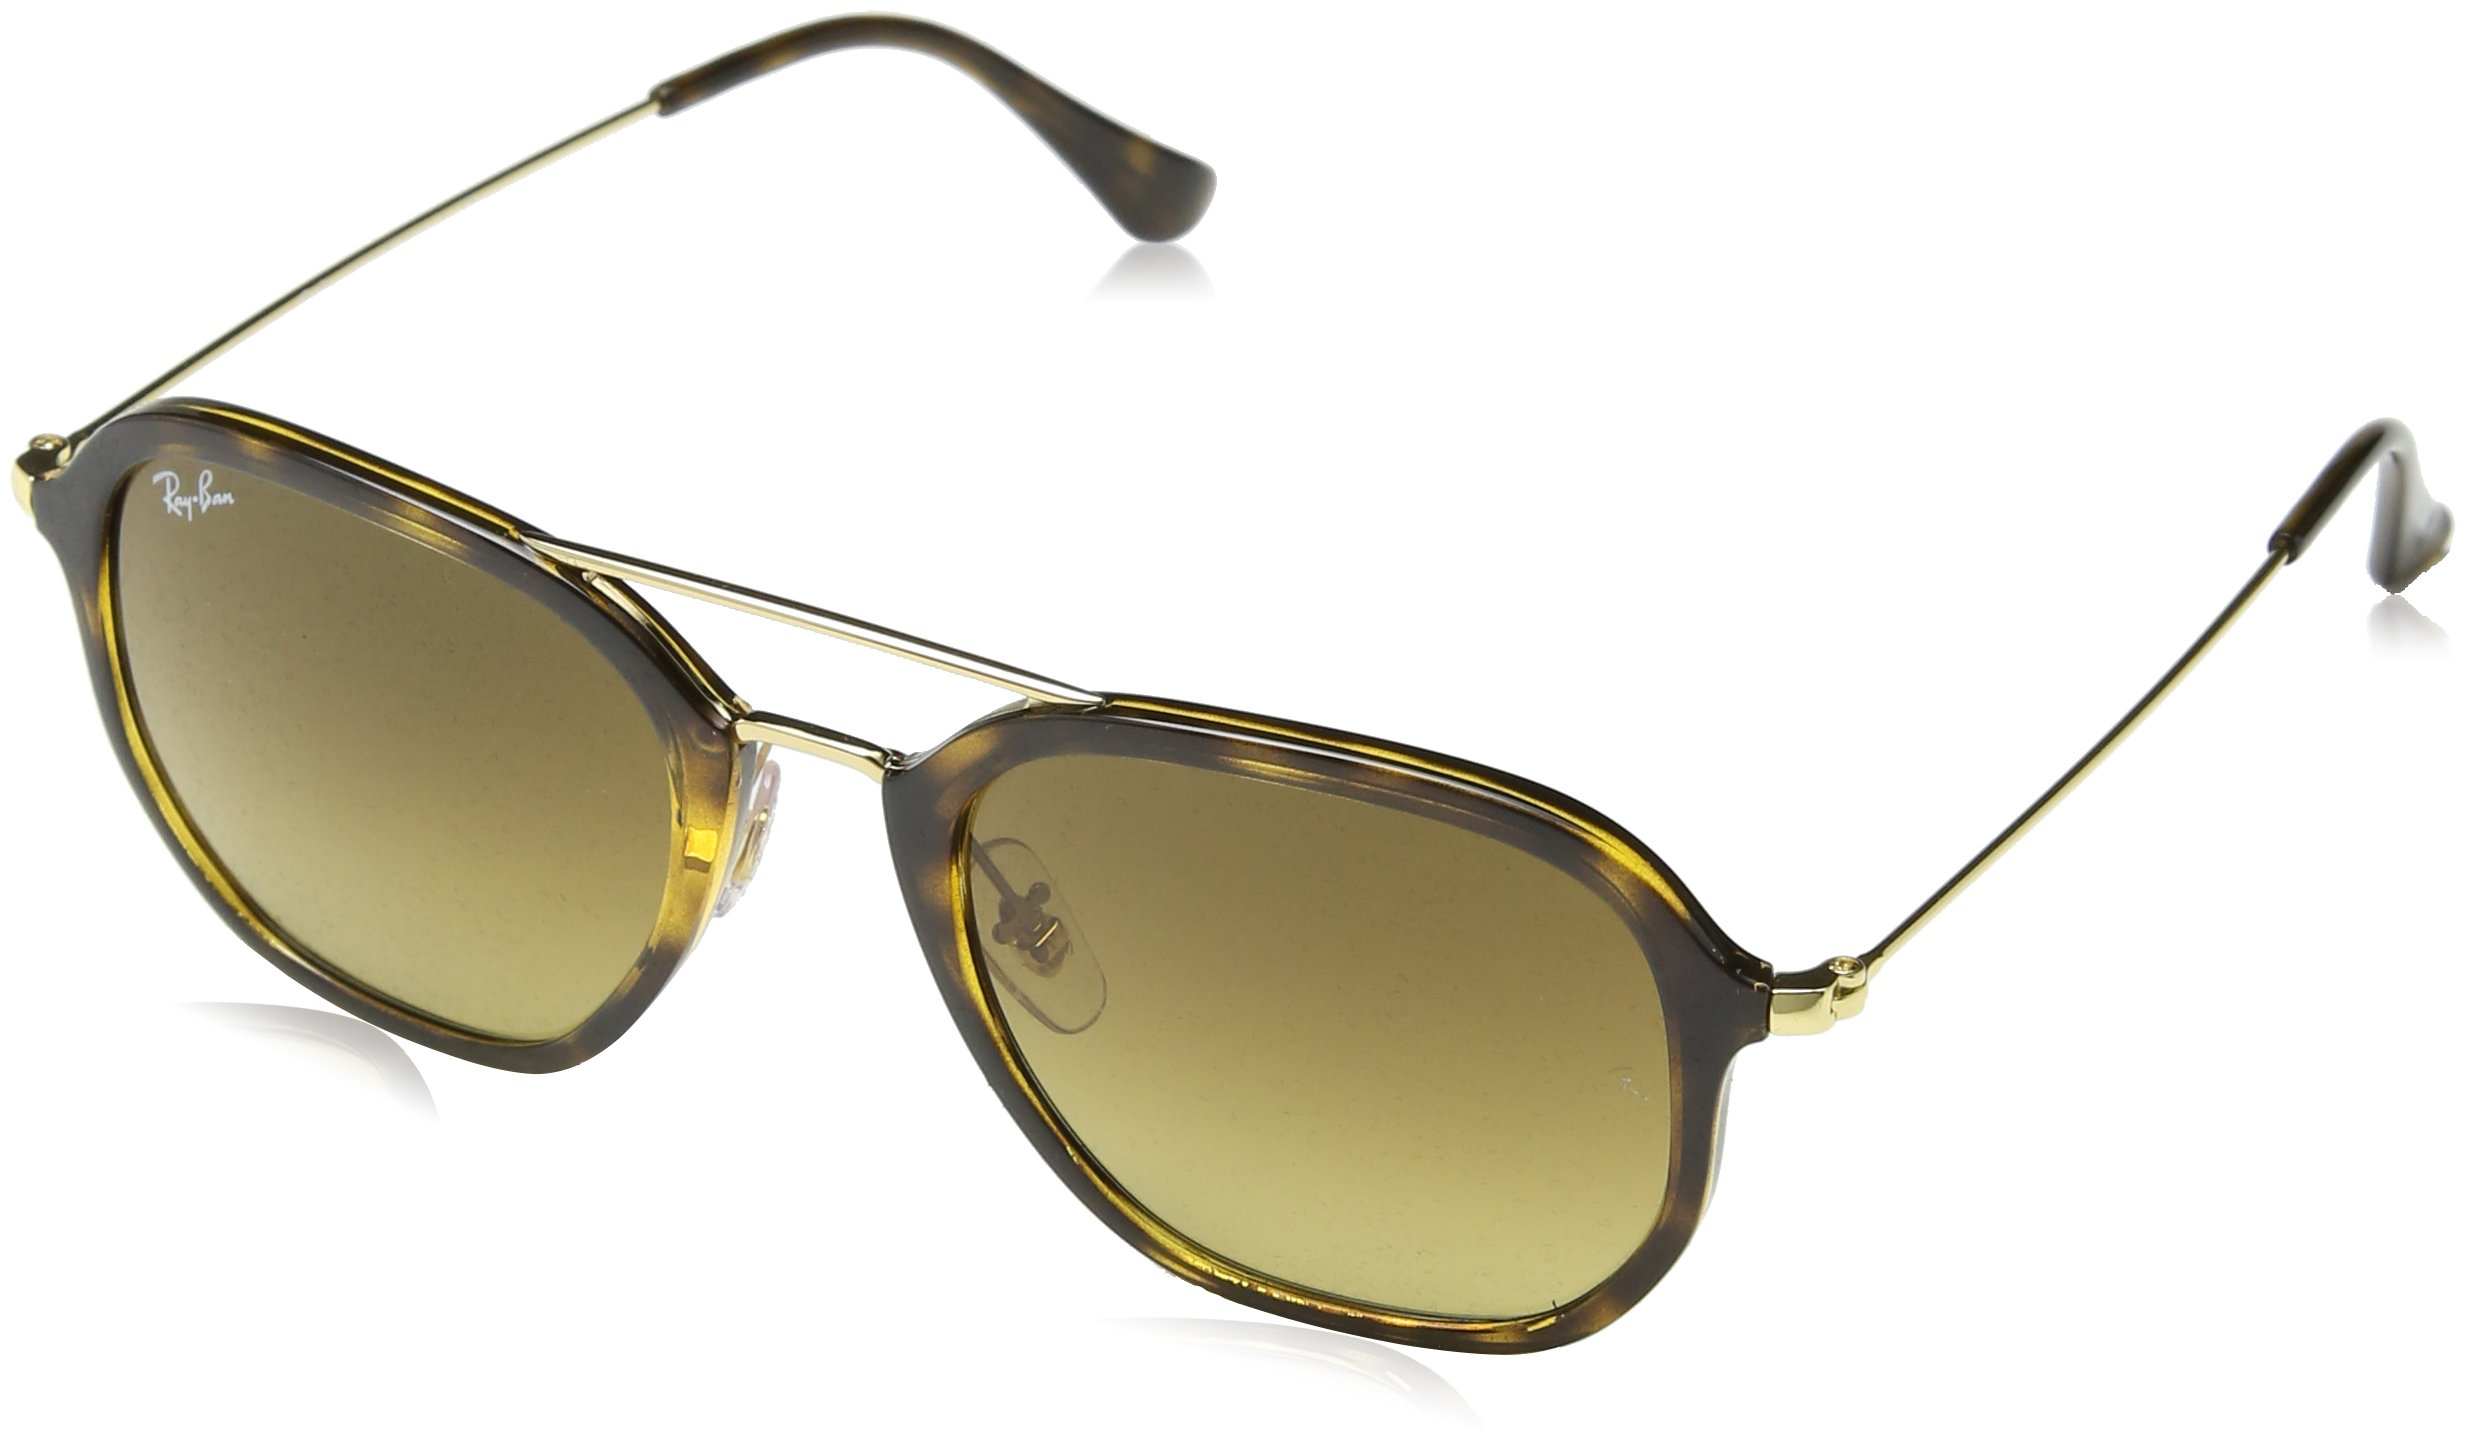 Ray-Ban Women's Highstreet Aviator Sunglasses, Shiny Havana/Brown, One Size by Ray-Ban